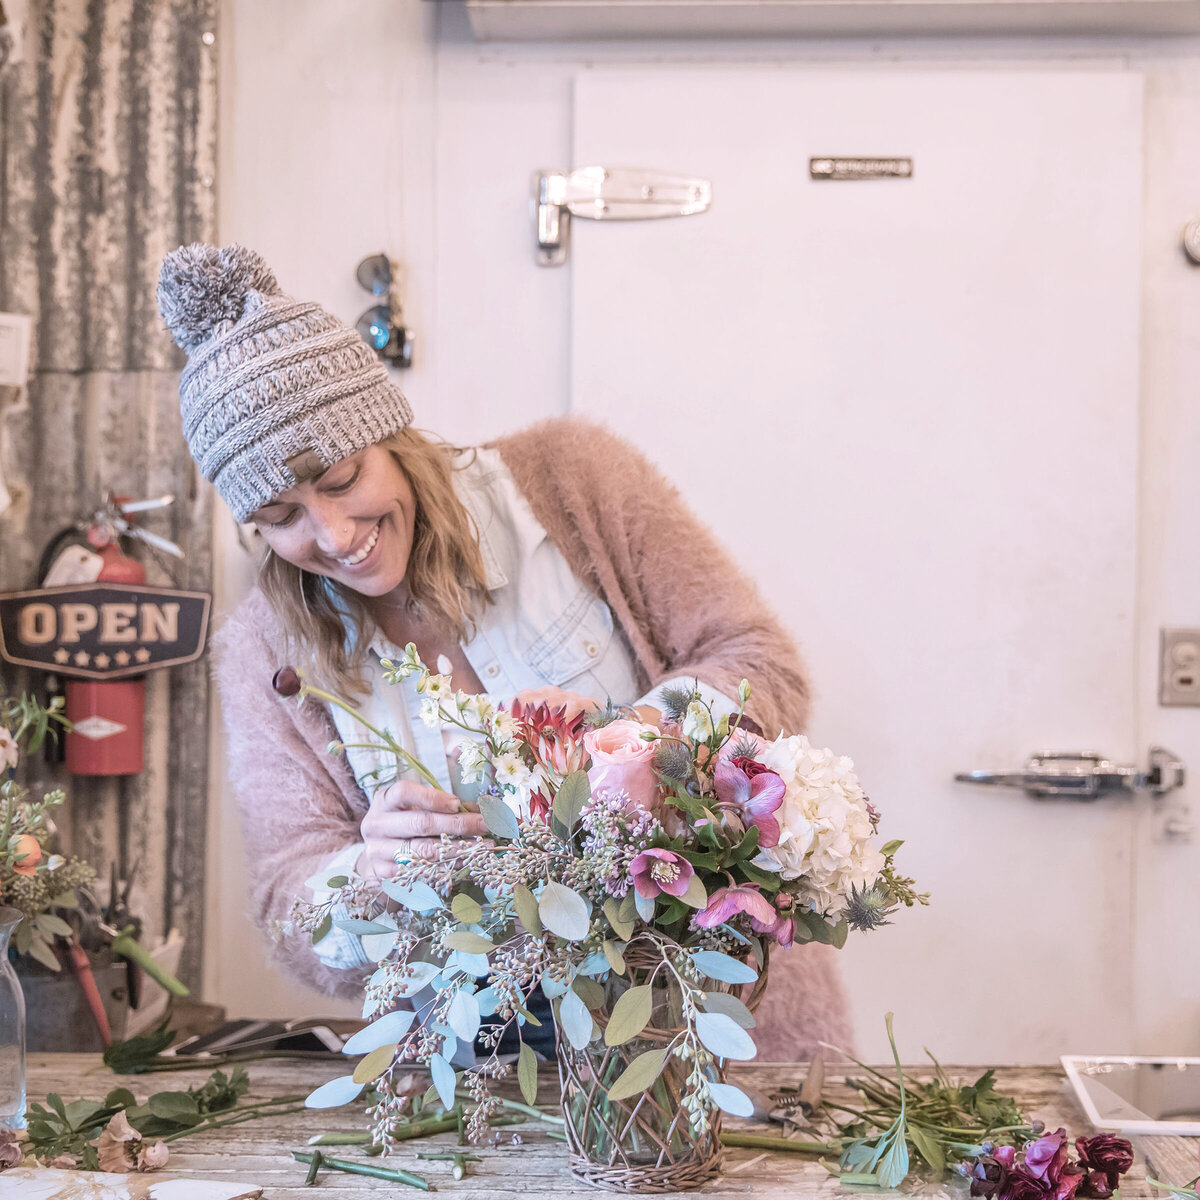 Florist in Danville California arranging flowers photographed by Nancy Ingersoll